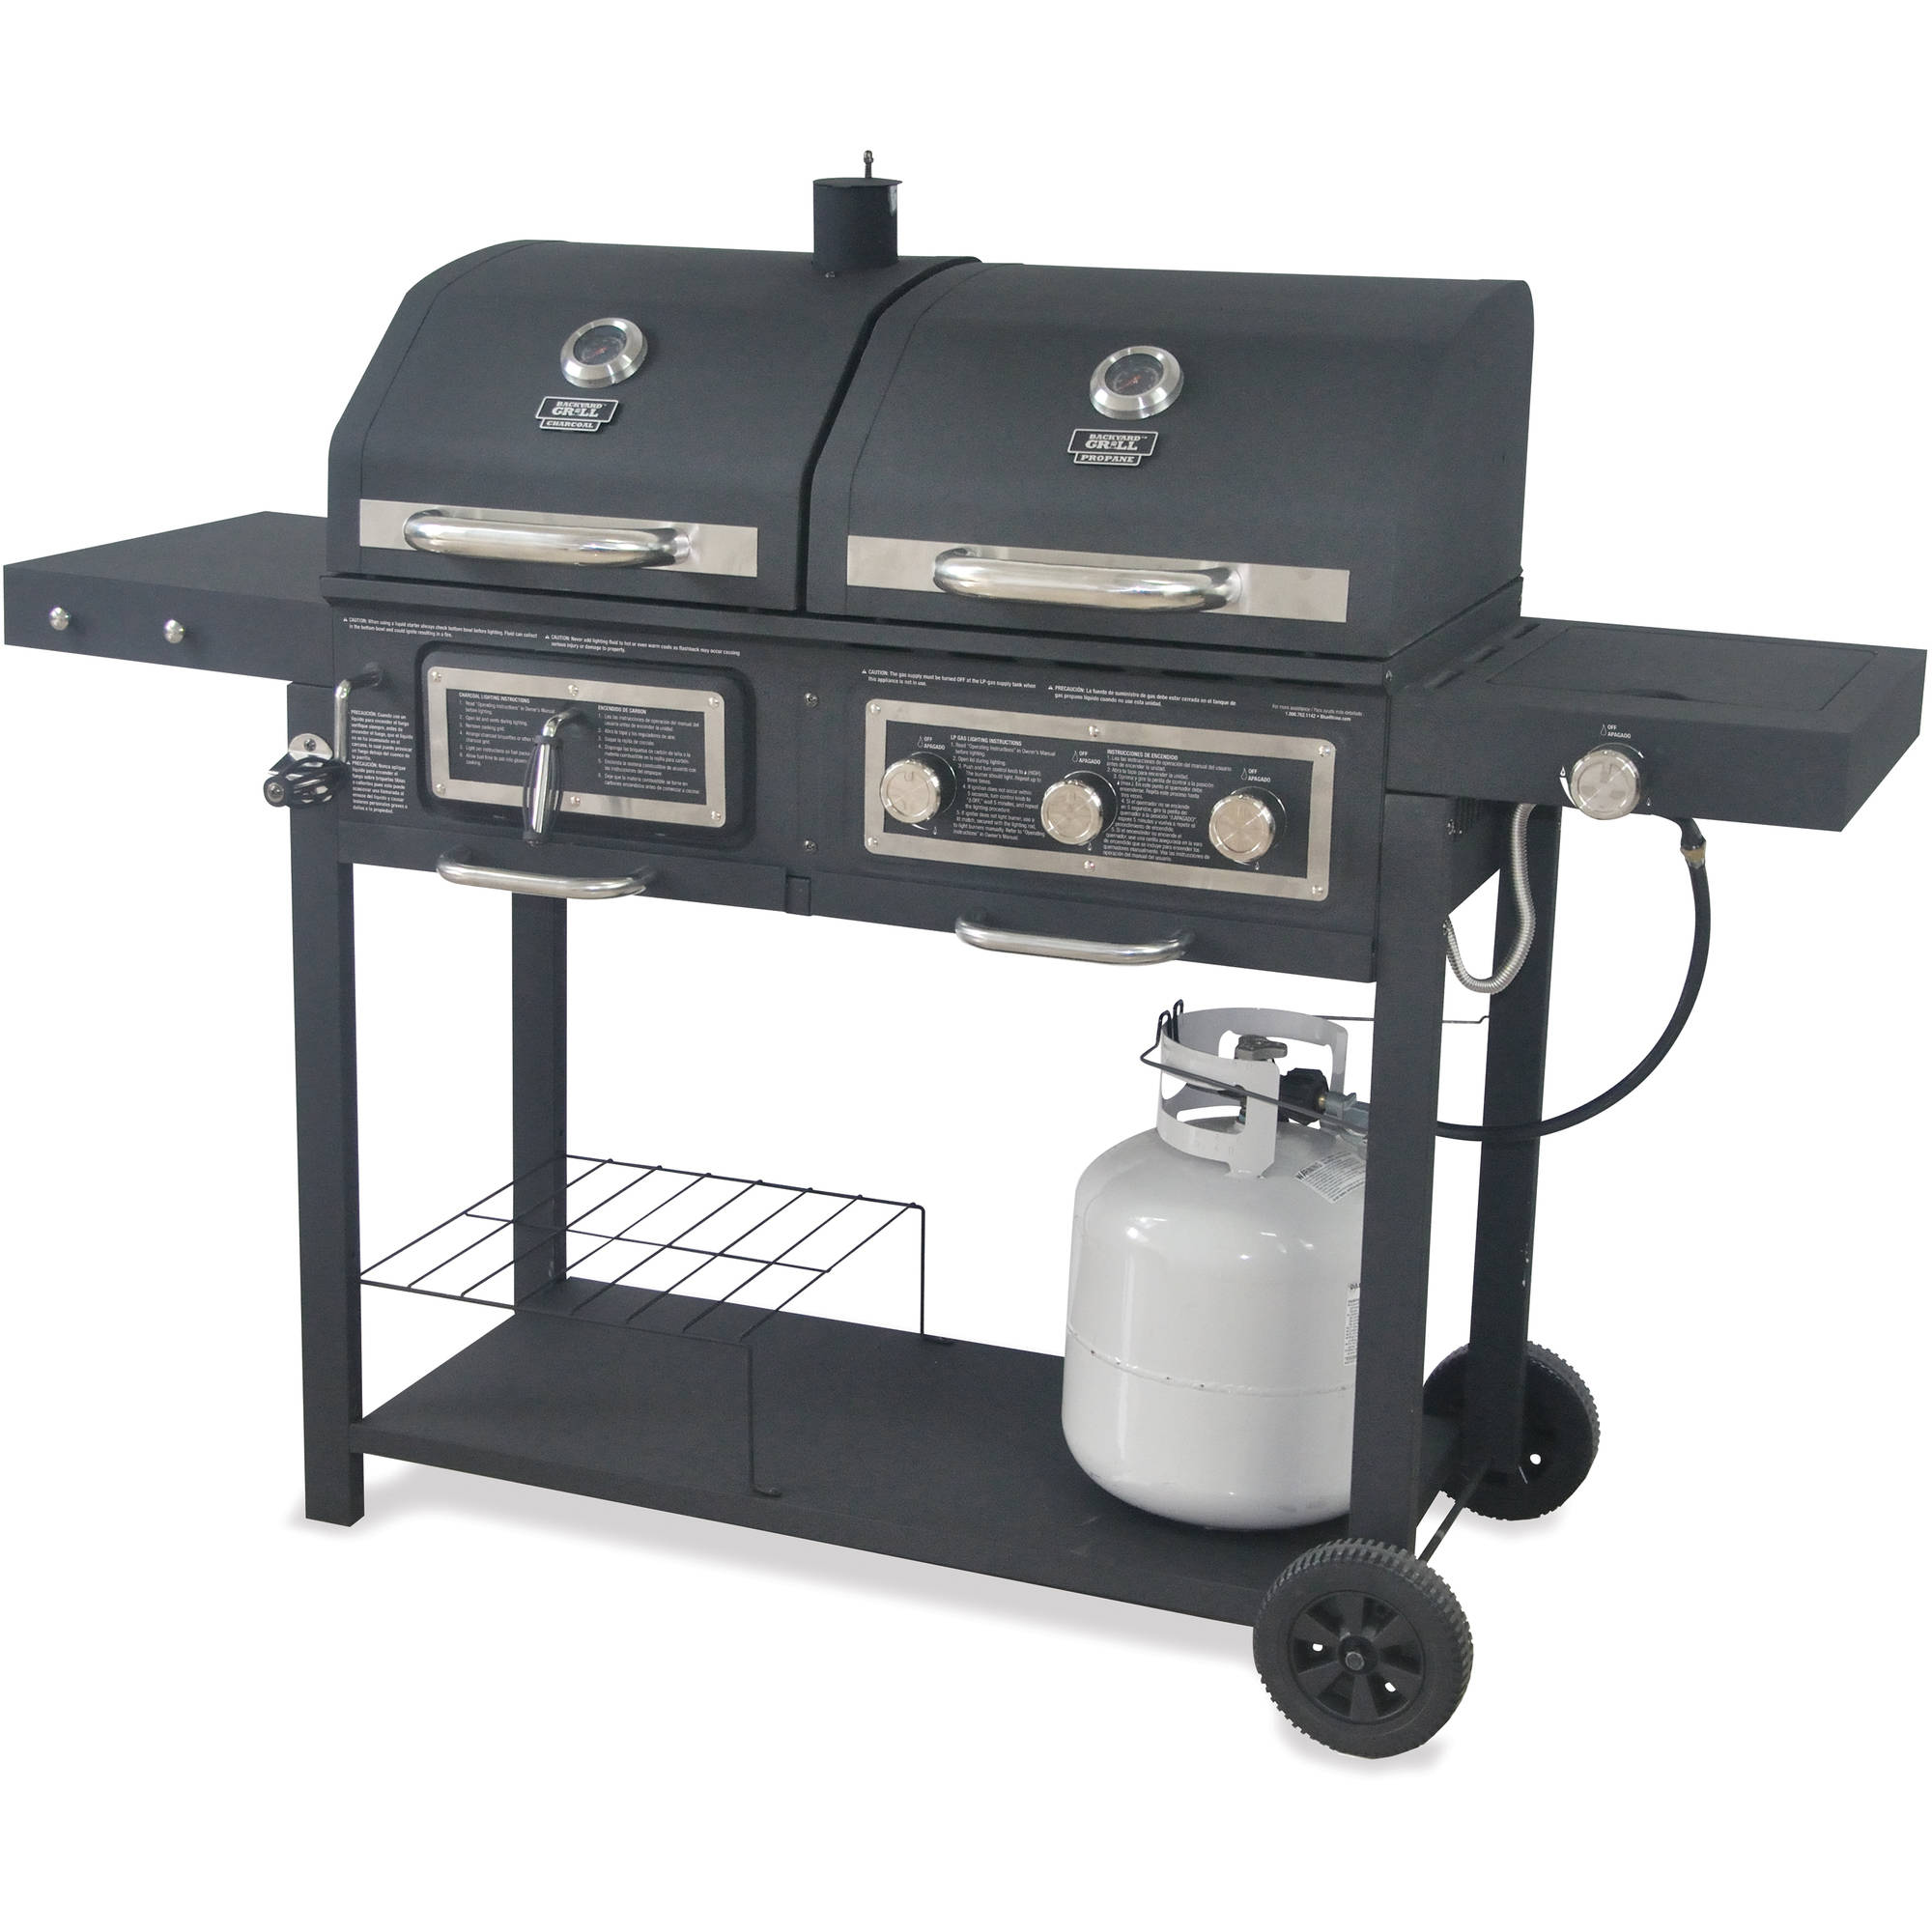 Merveilleux Backyard Grill Dual Gas/Charcoal Grill